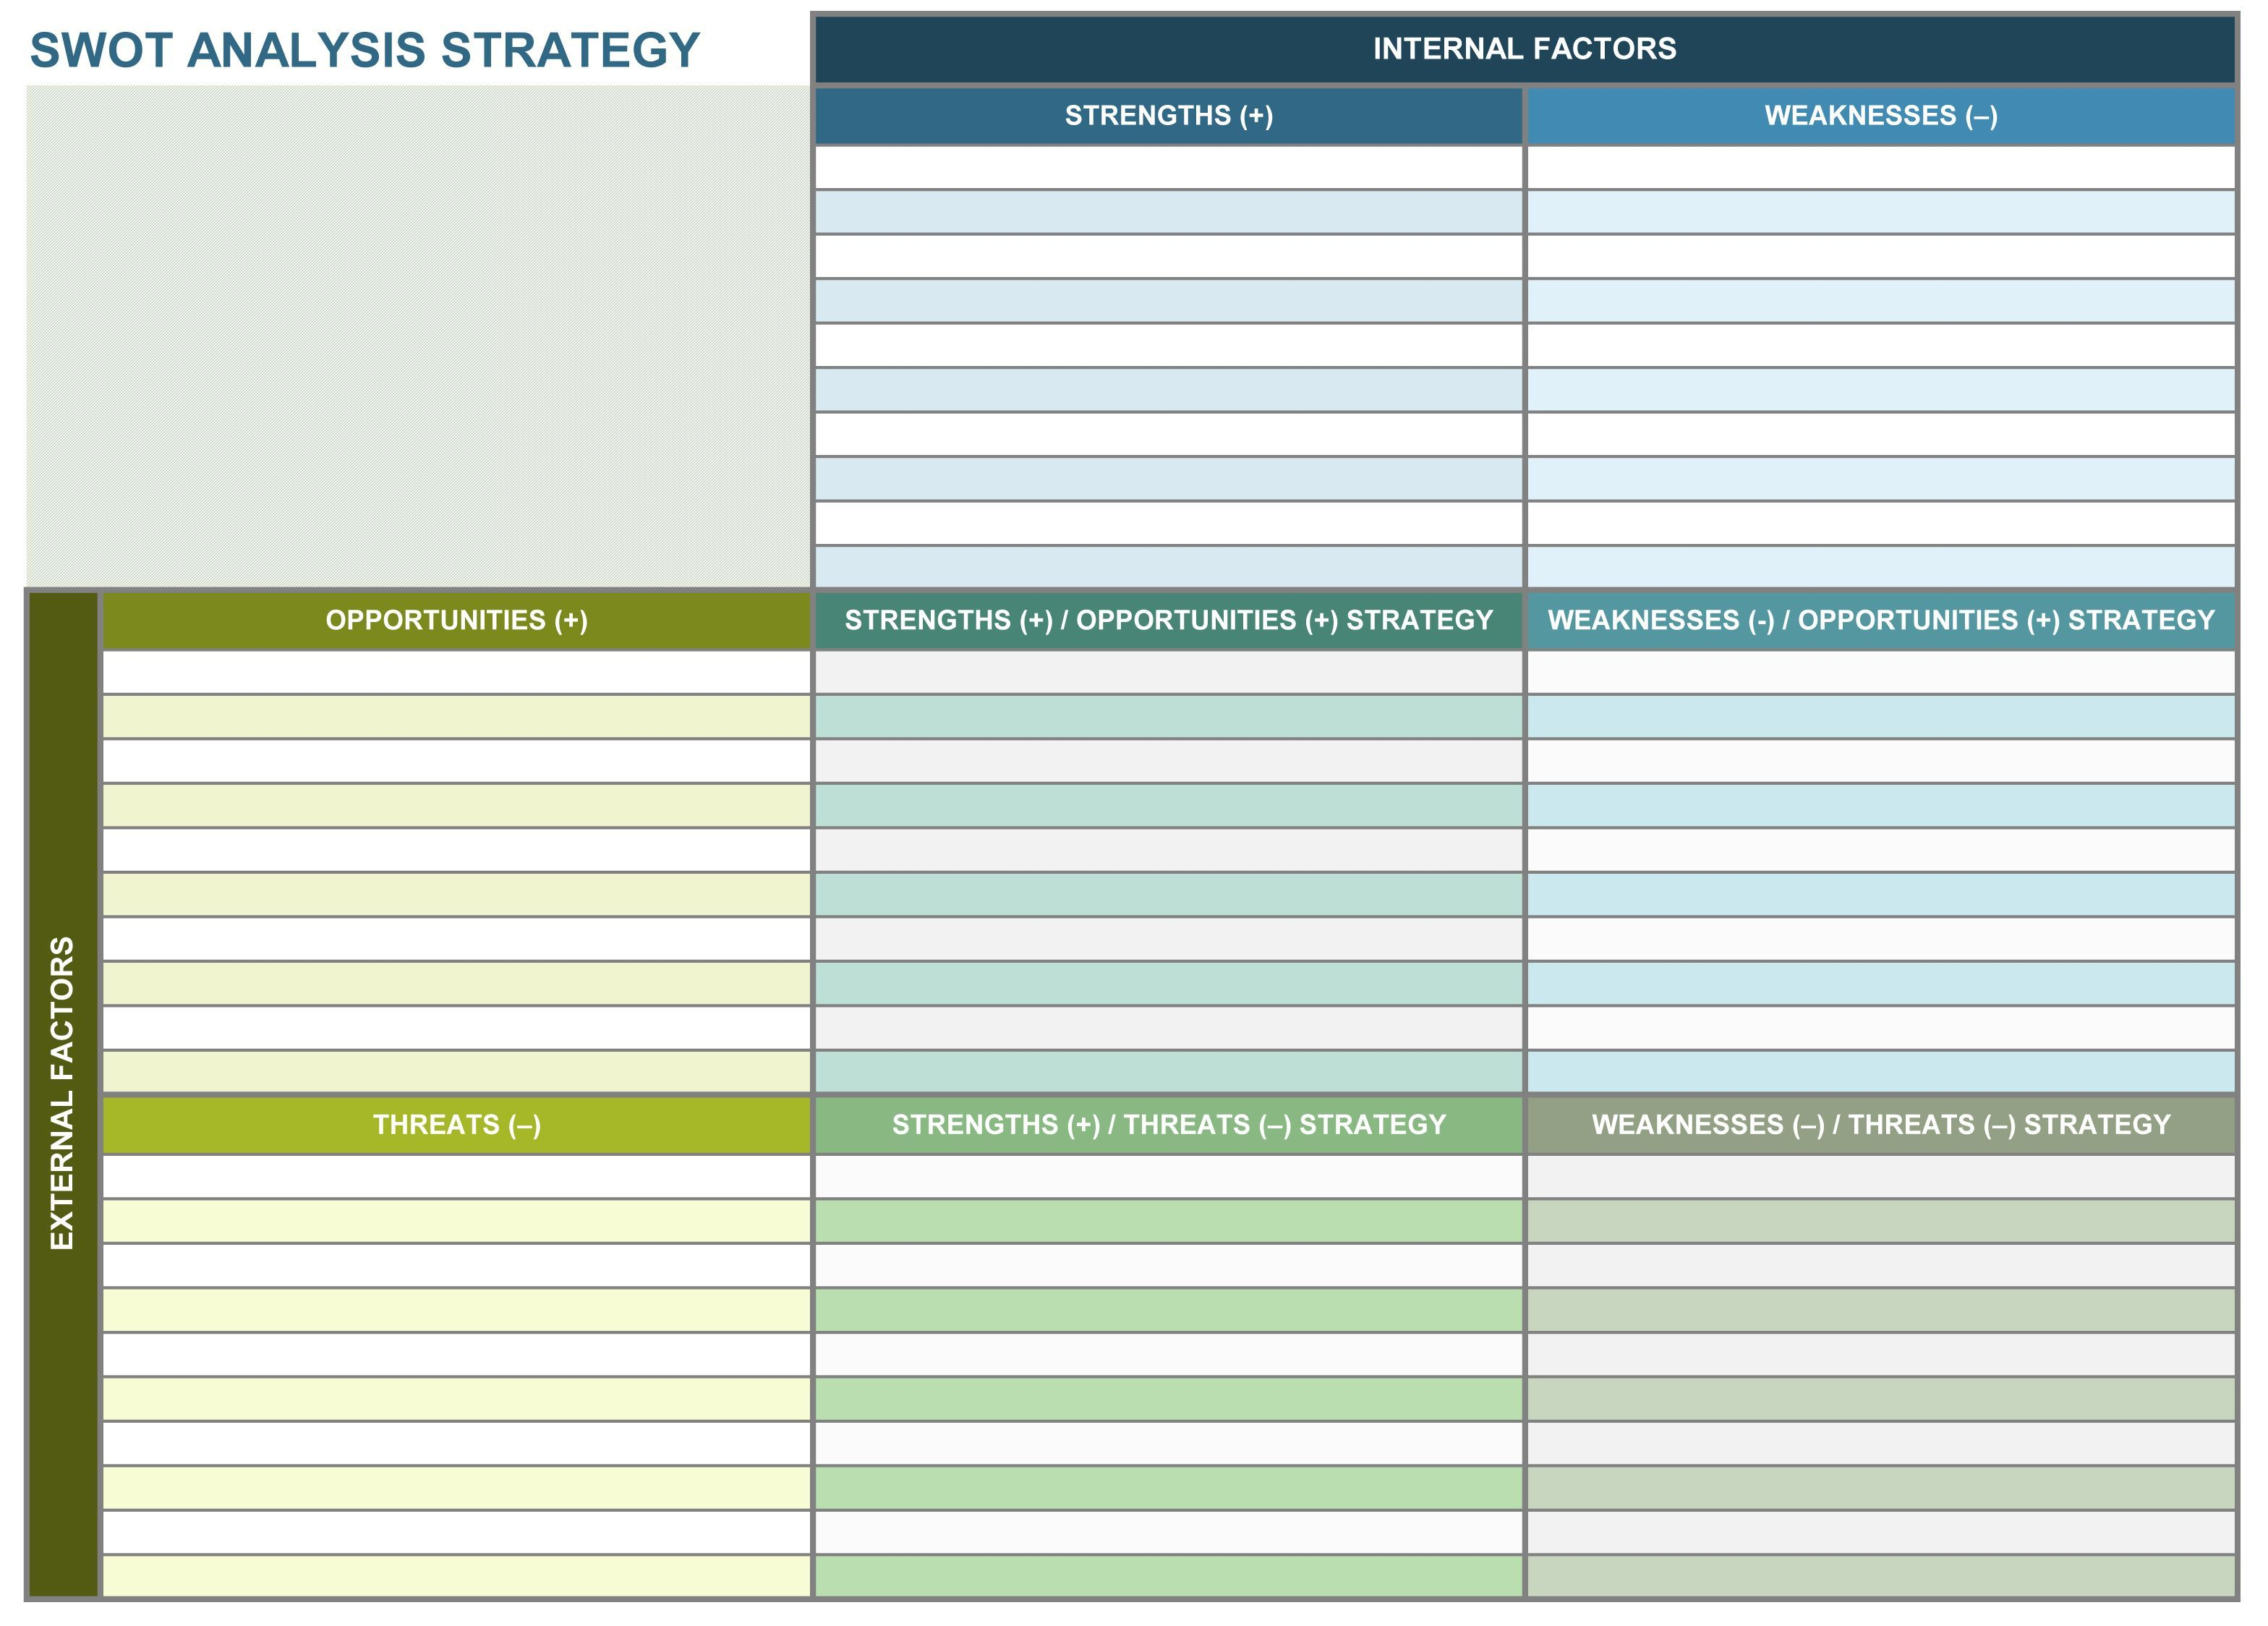 Swot Analysis Strategy Excel Template Http Templatedocs Net Swot Analysis Template Strategic Planning Template Strategic Planning Swot Analysis Template